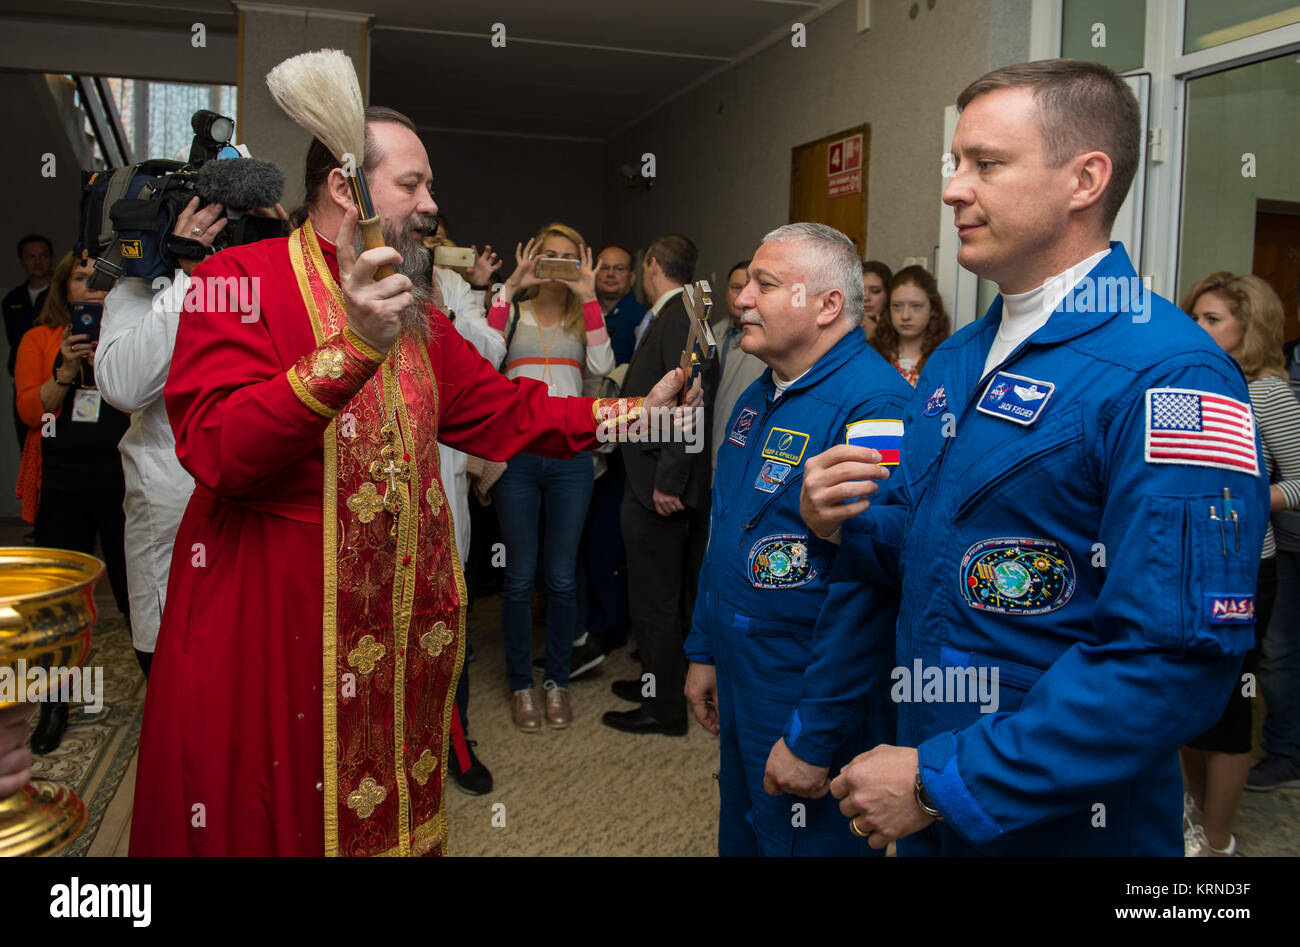 Expedition 51 Soyuz Commander Fyodor Yurchikhin of Roscosmos, left, receives the traditional blessing from a Russian - Stock Image